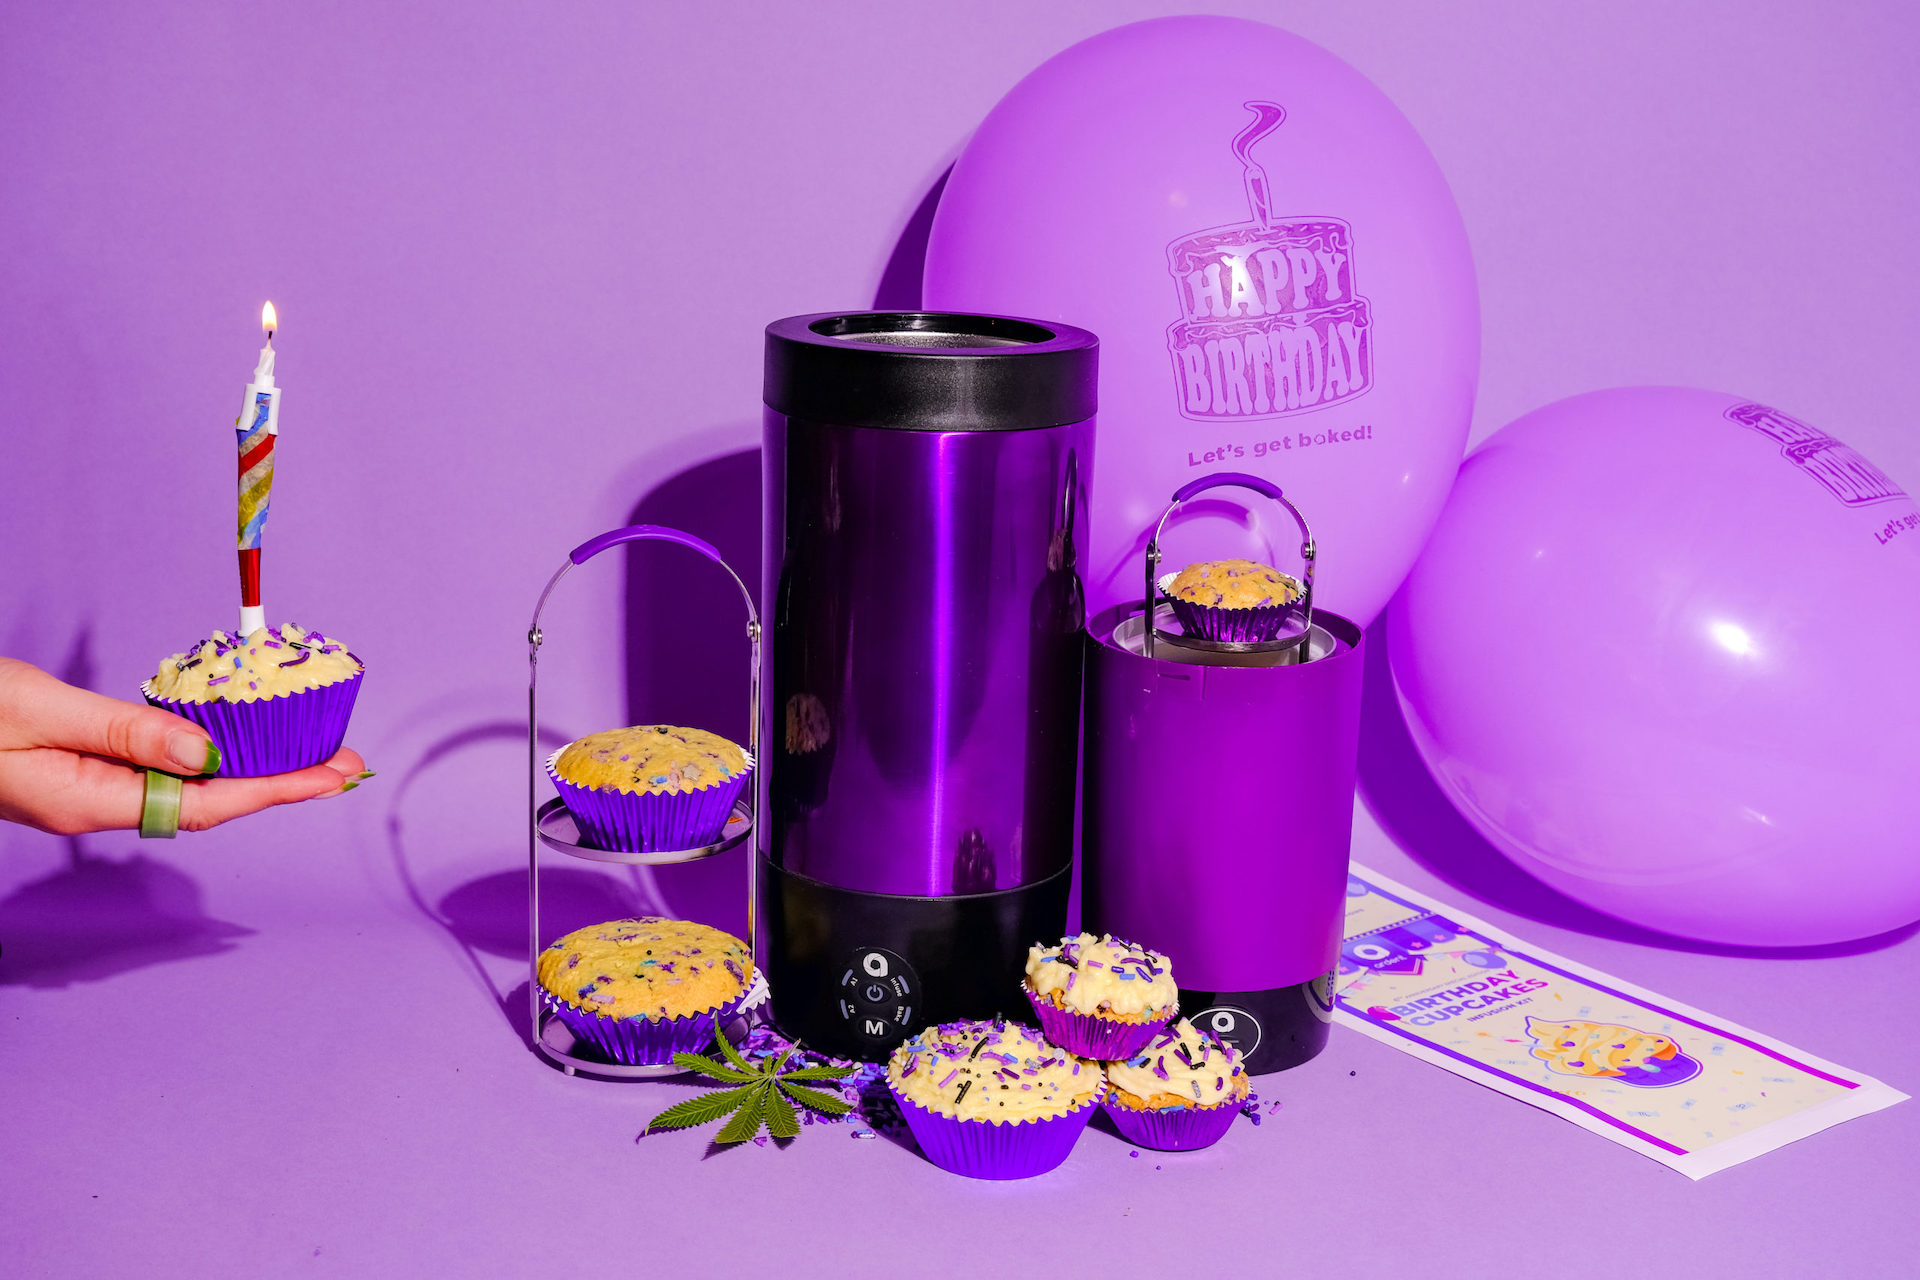 Ardent Infused Birthday Cupcake Kit - My Personal Plants